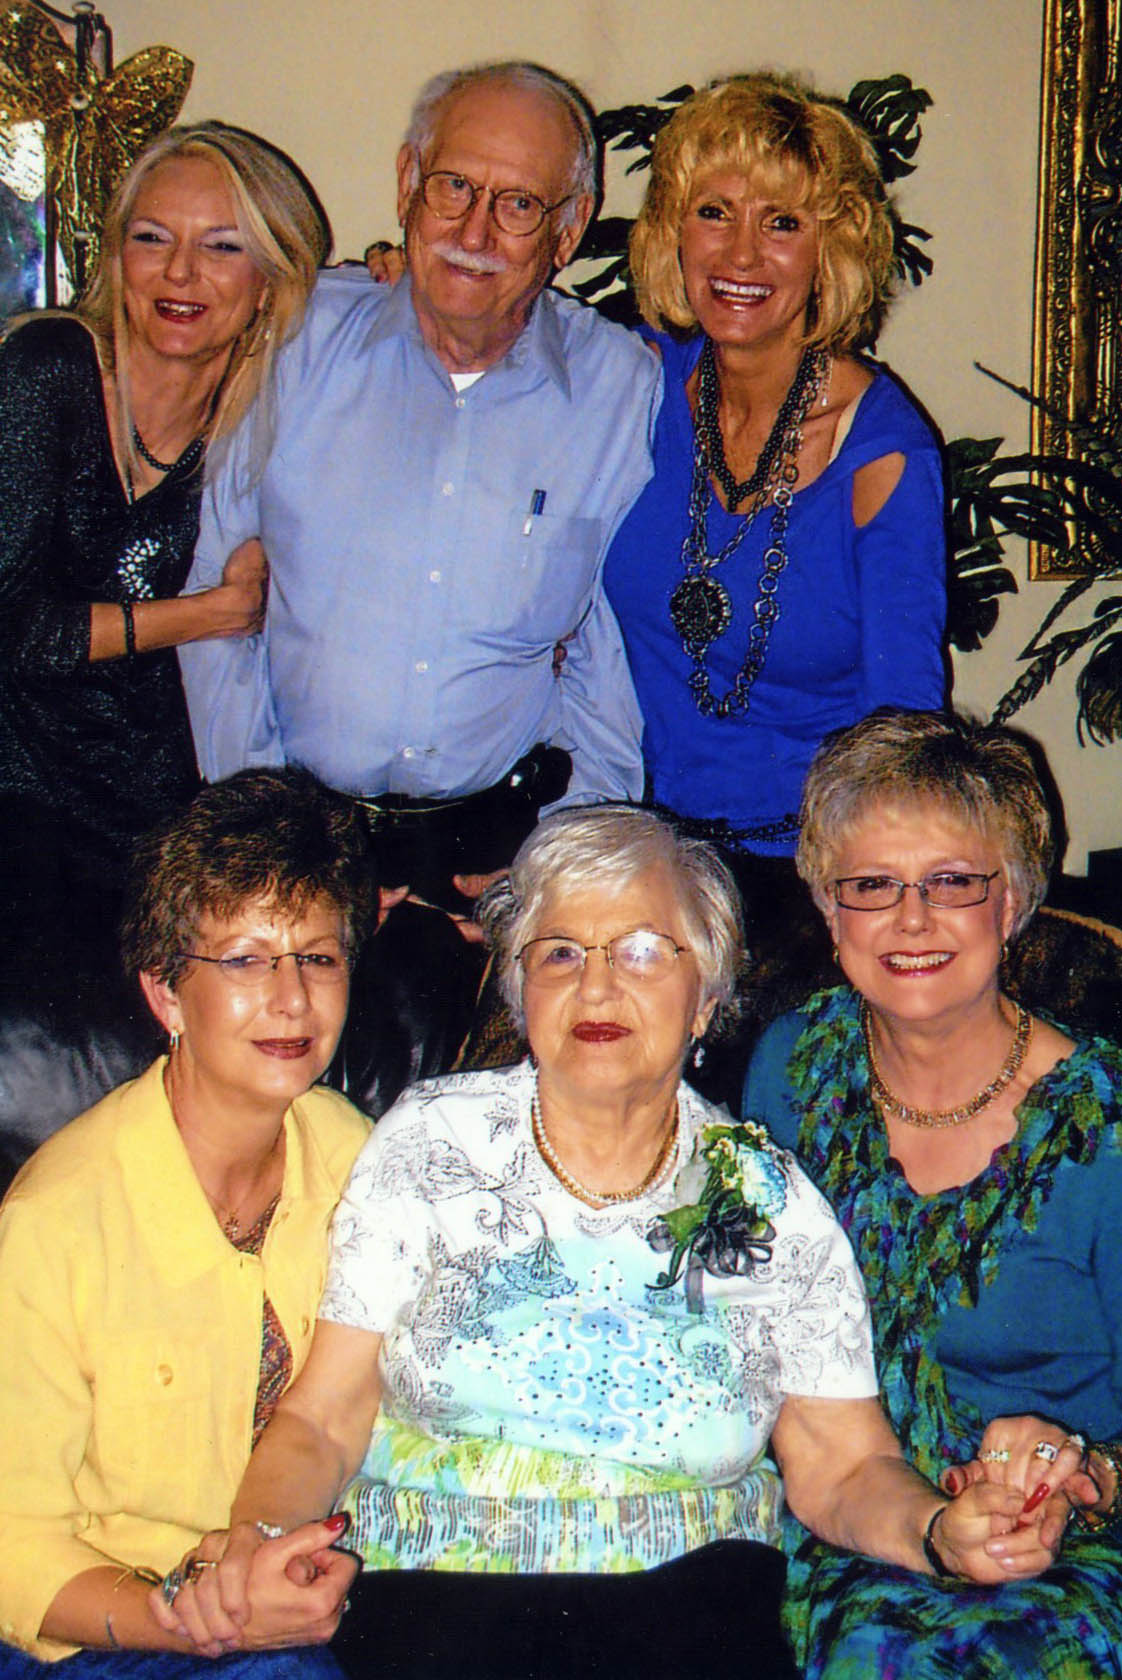 """Don and Lilly with their daughters in 2013 (top row) Carol """"Denice"""" Hollier (youngest) and Donna Lynn Jeffus (next to youngest); and (bottom row) Mary """"Madelein"""" McBride (oldest) and Adine """"Evelyn"""" Pinkner (next to oldest)."""